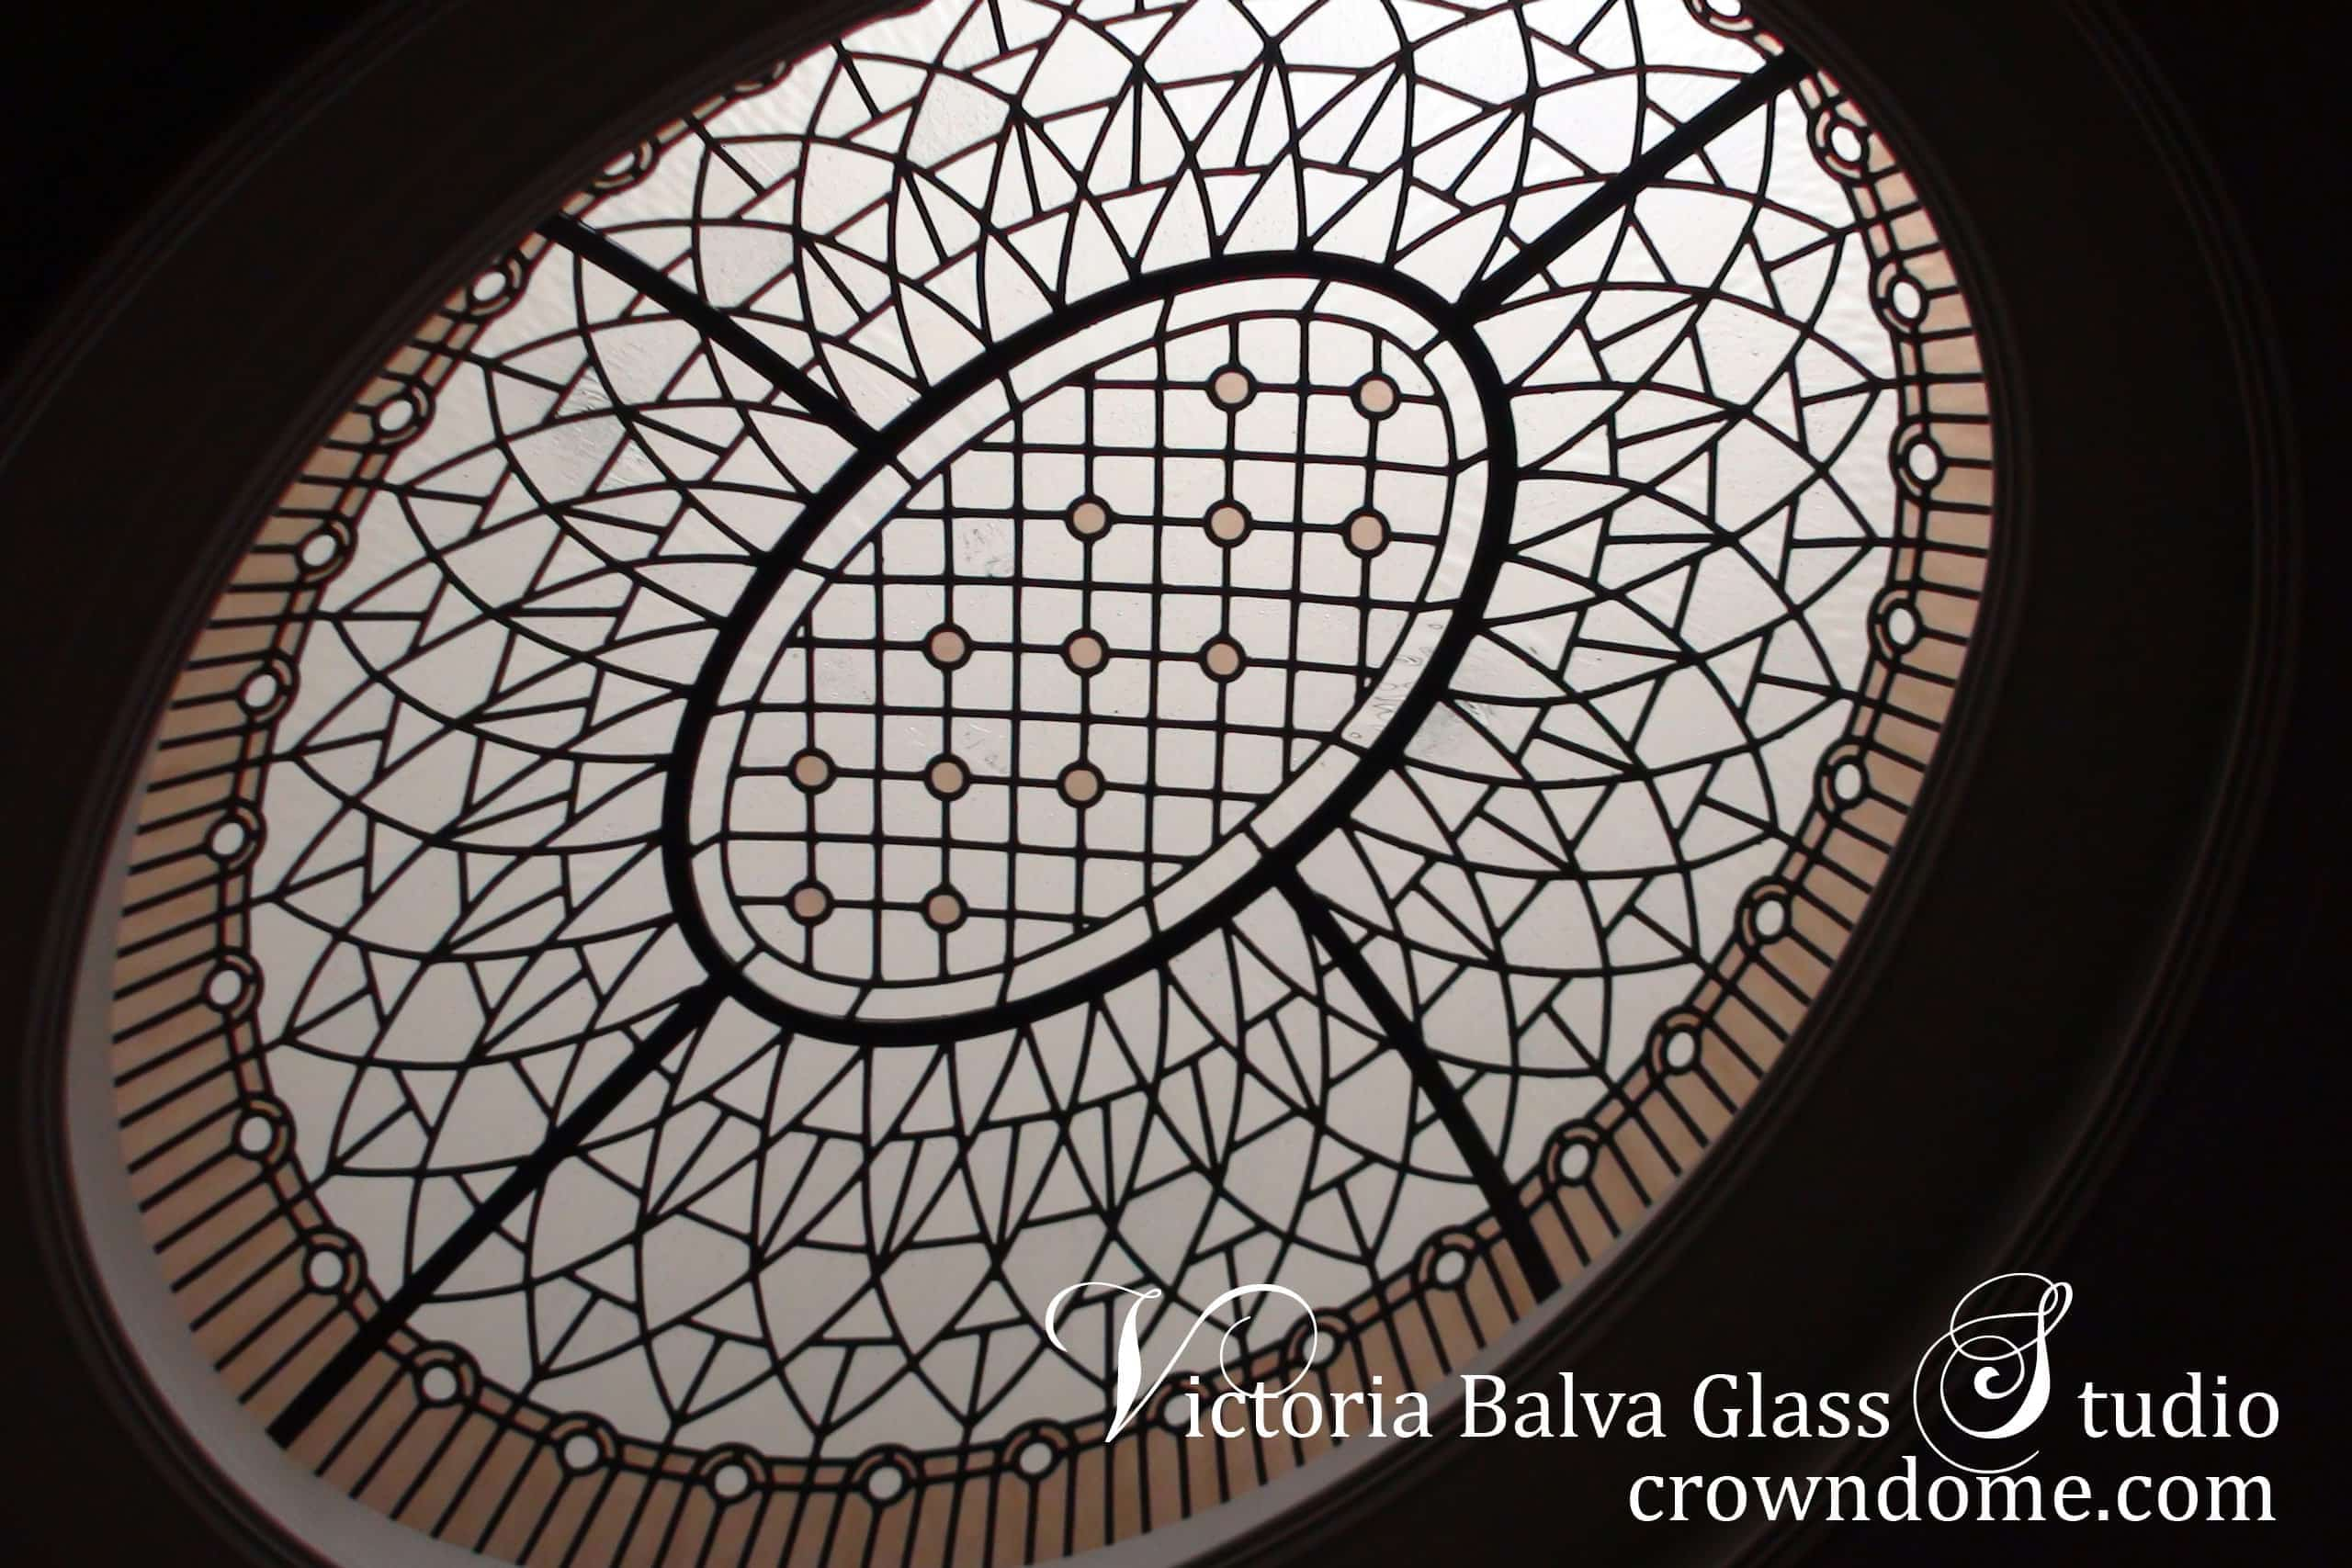 Custom designed leaded glass oval dome skylight lay light for a hallway of custom built luxury house